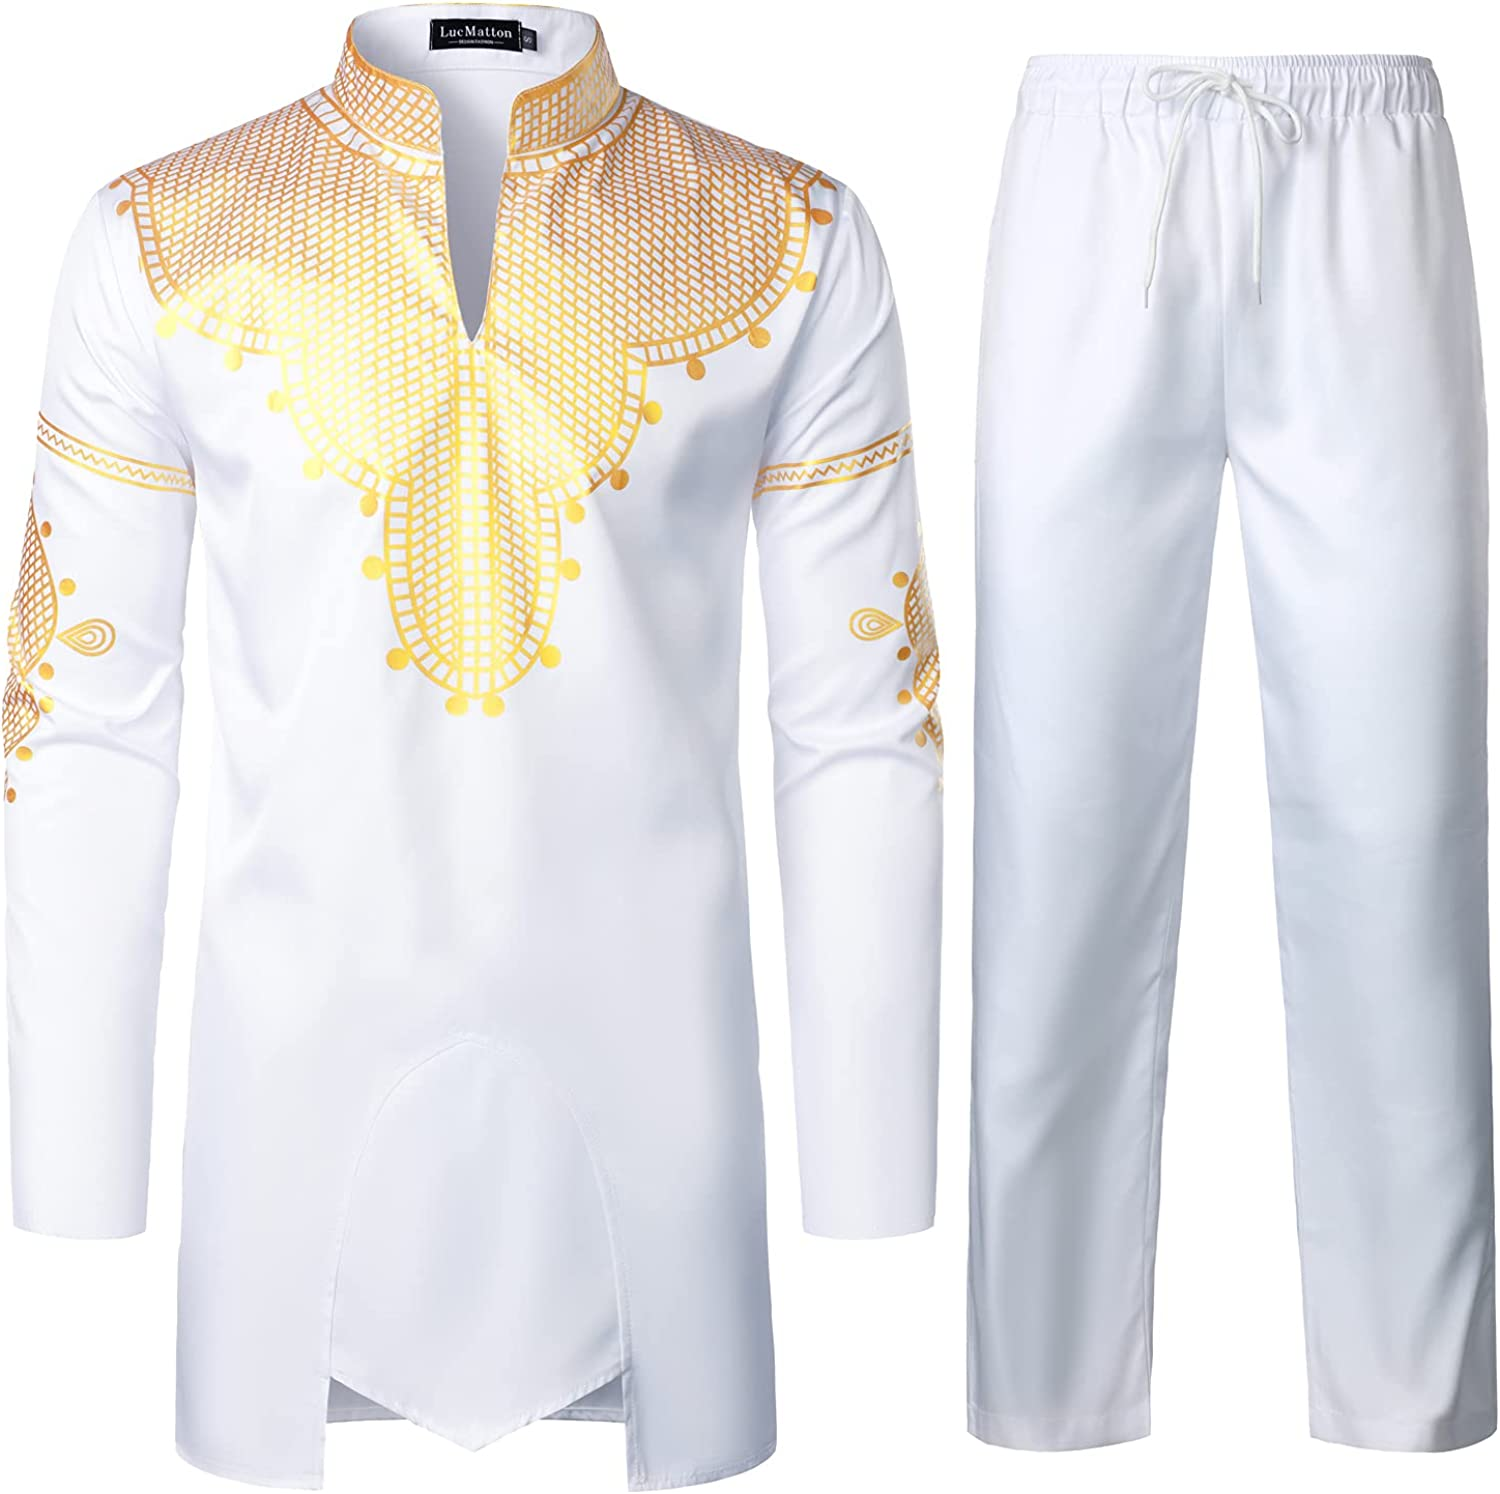 LucMaton Men's African 2 Piece Set Long Sleeve Gold Print Dashiki and Pants Outfit Traditional Suit